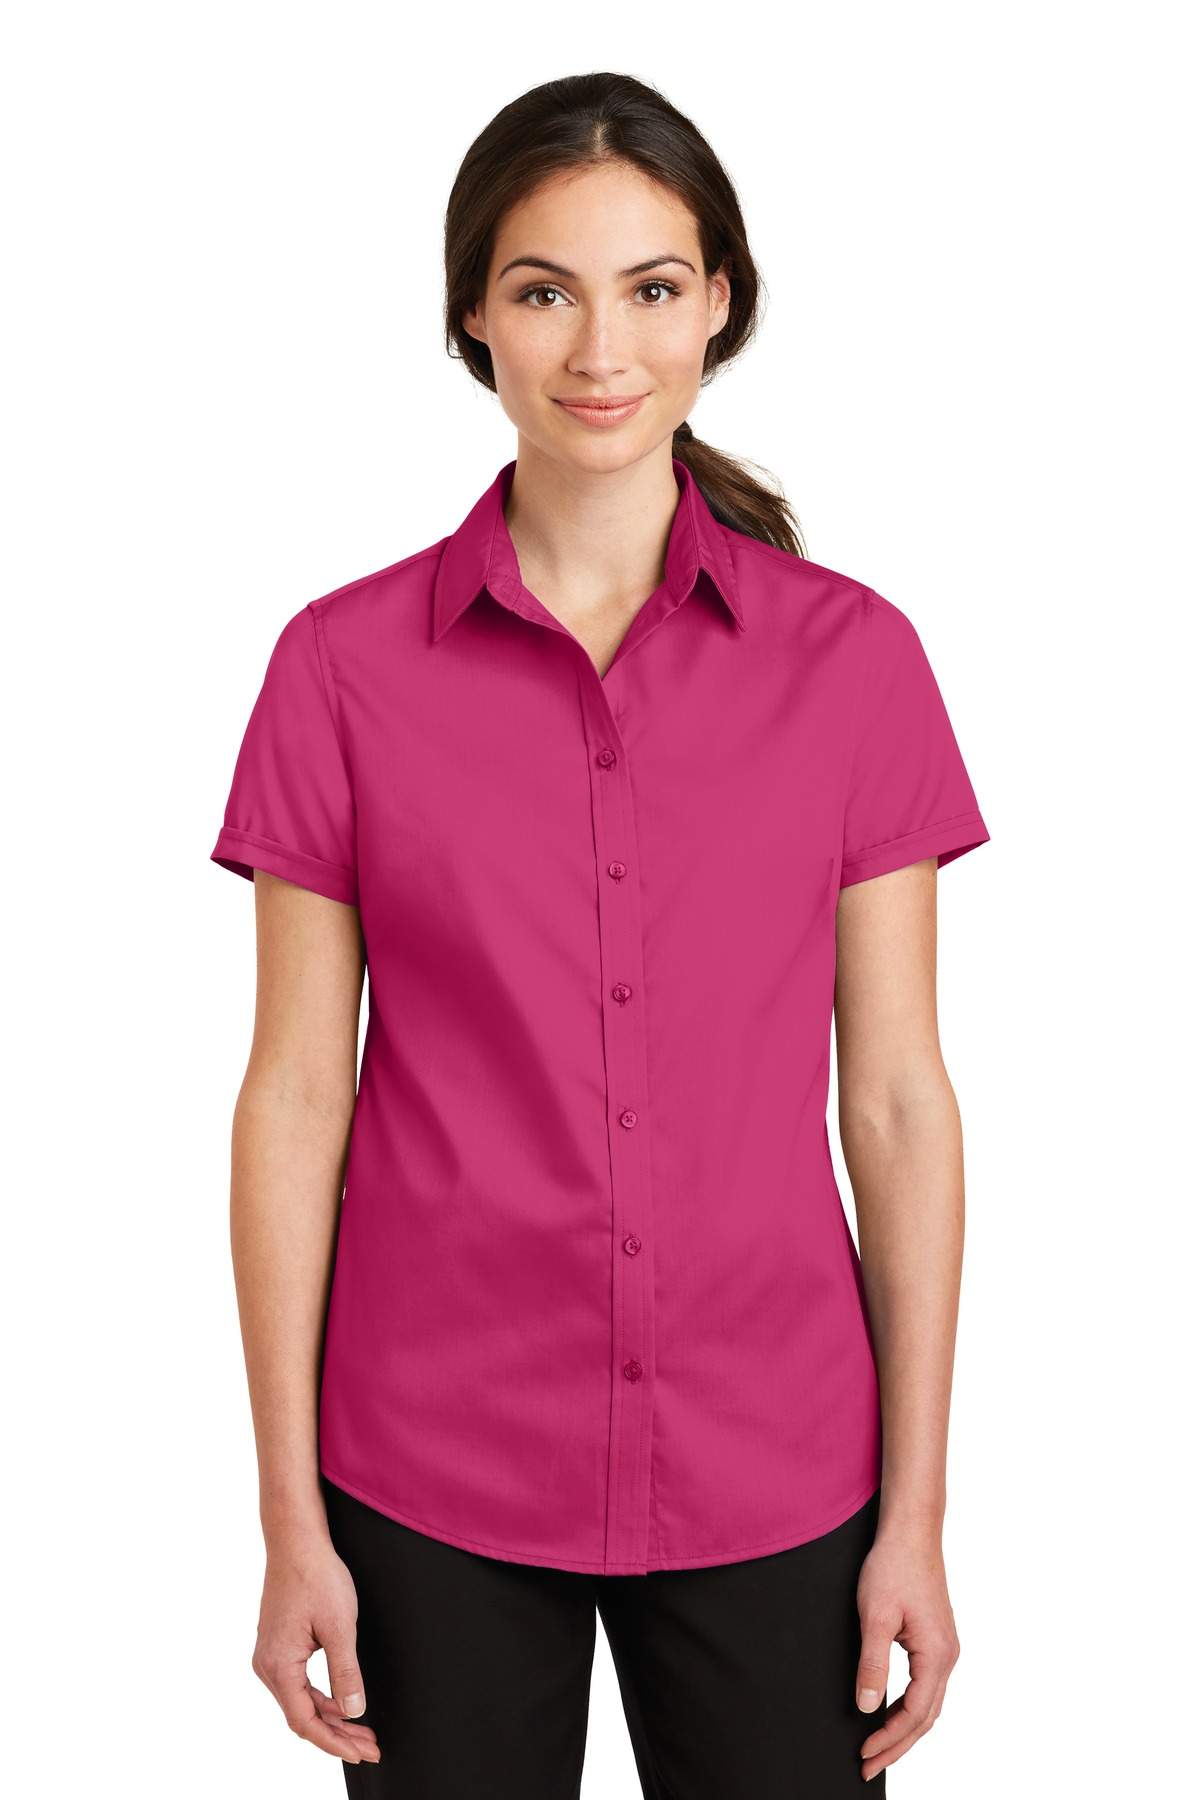 Port Authority ®  Ladies Short Sleeve SuperPro ™  Twill Shirt. L664 - Pink Azalea